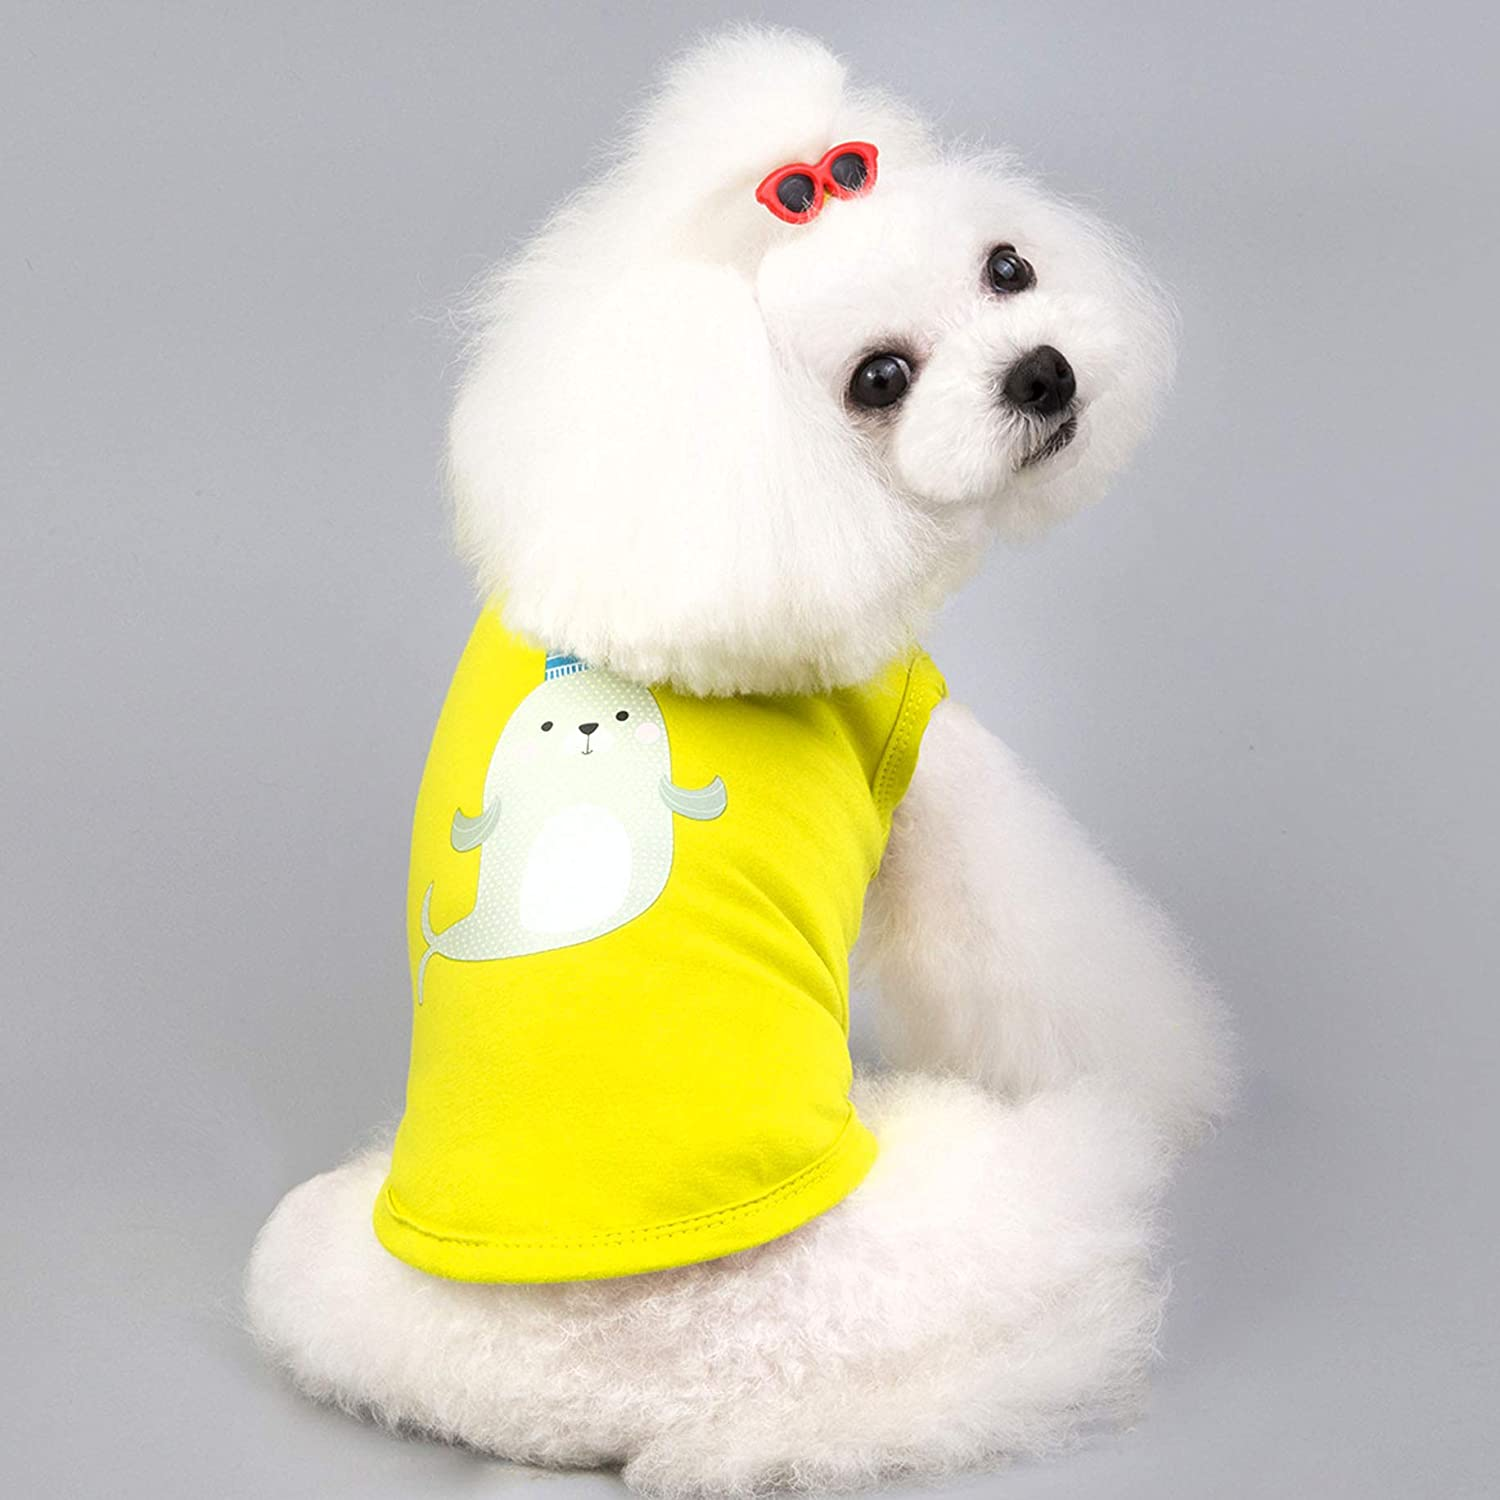 Dog Shirts,Pet Dog T Shirt Cloth Puppy Dog Cat Vest Doggie Clothing Apparel Costume Female Male for Small Dog-2pcs M:Back Length:25cm,Chest size:35cm, Tiger